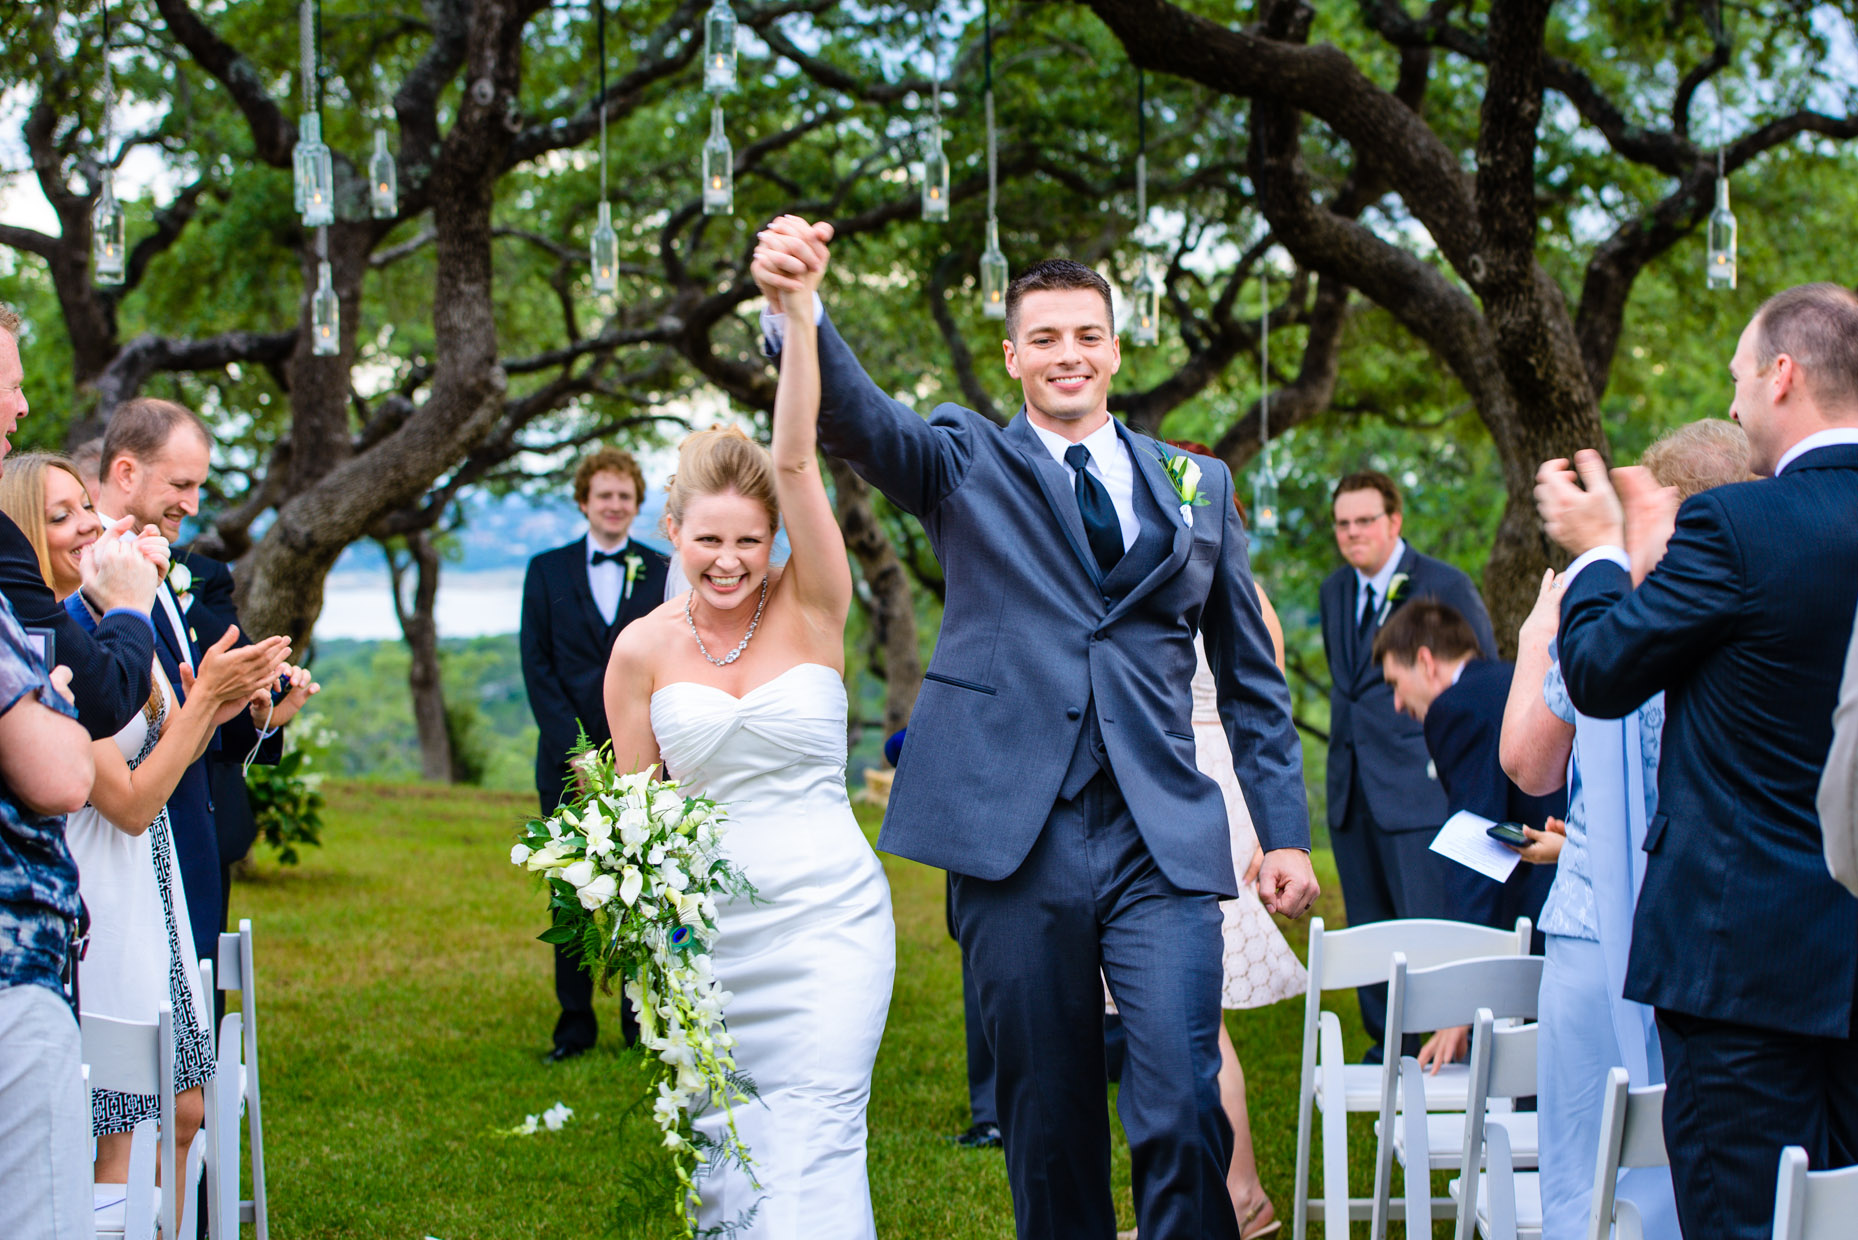 ceremony-Wedding-Photographer-austin-hacienda-del-lago-tx.jpg